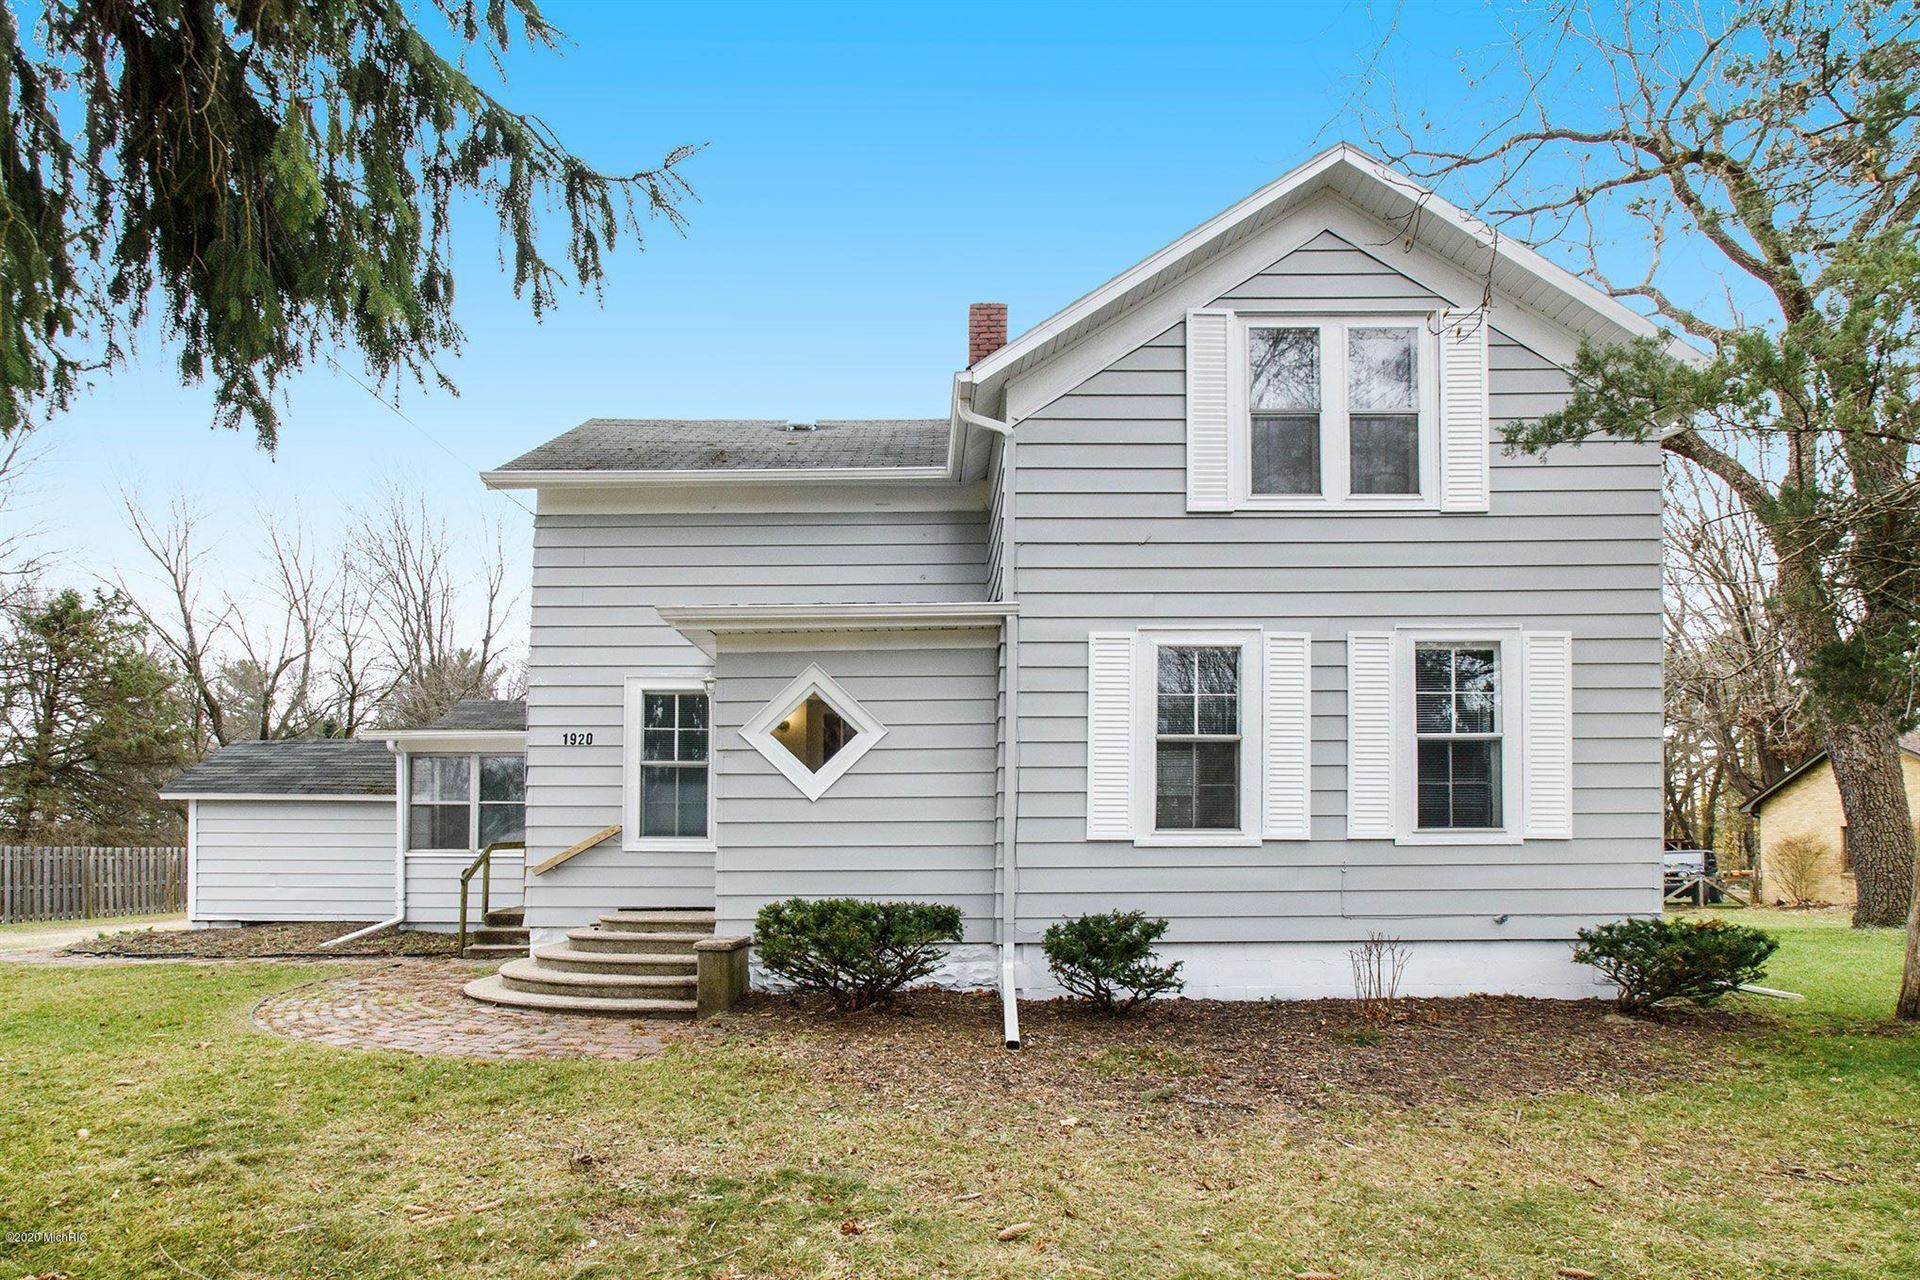 1920 Brown School Road, Saint Joseph, MI 49085 - MLS#: 20049955